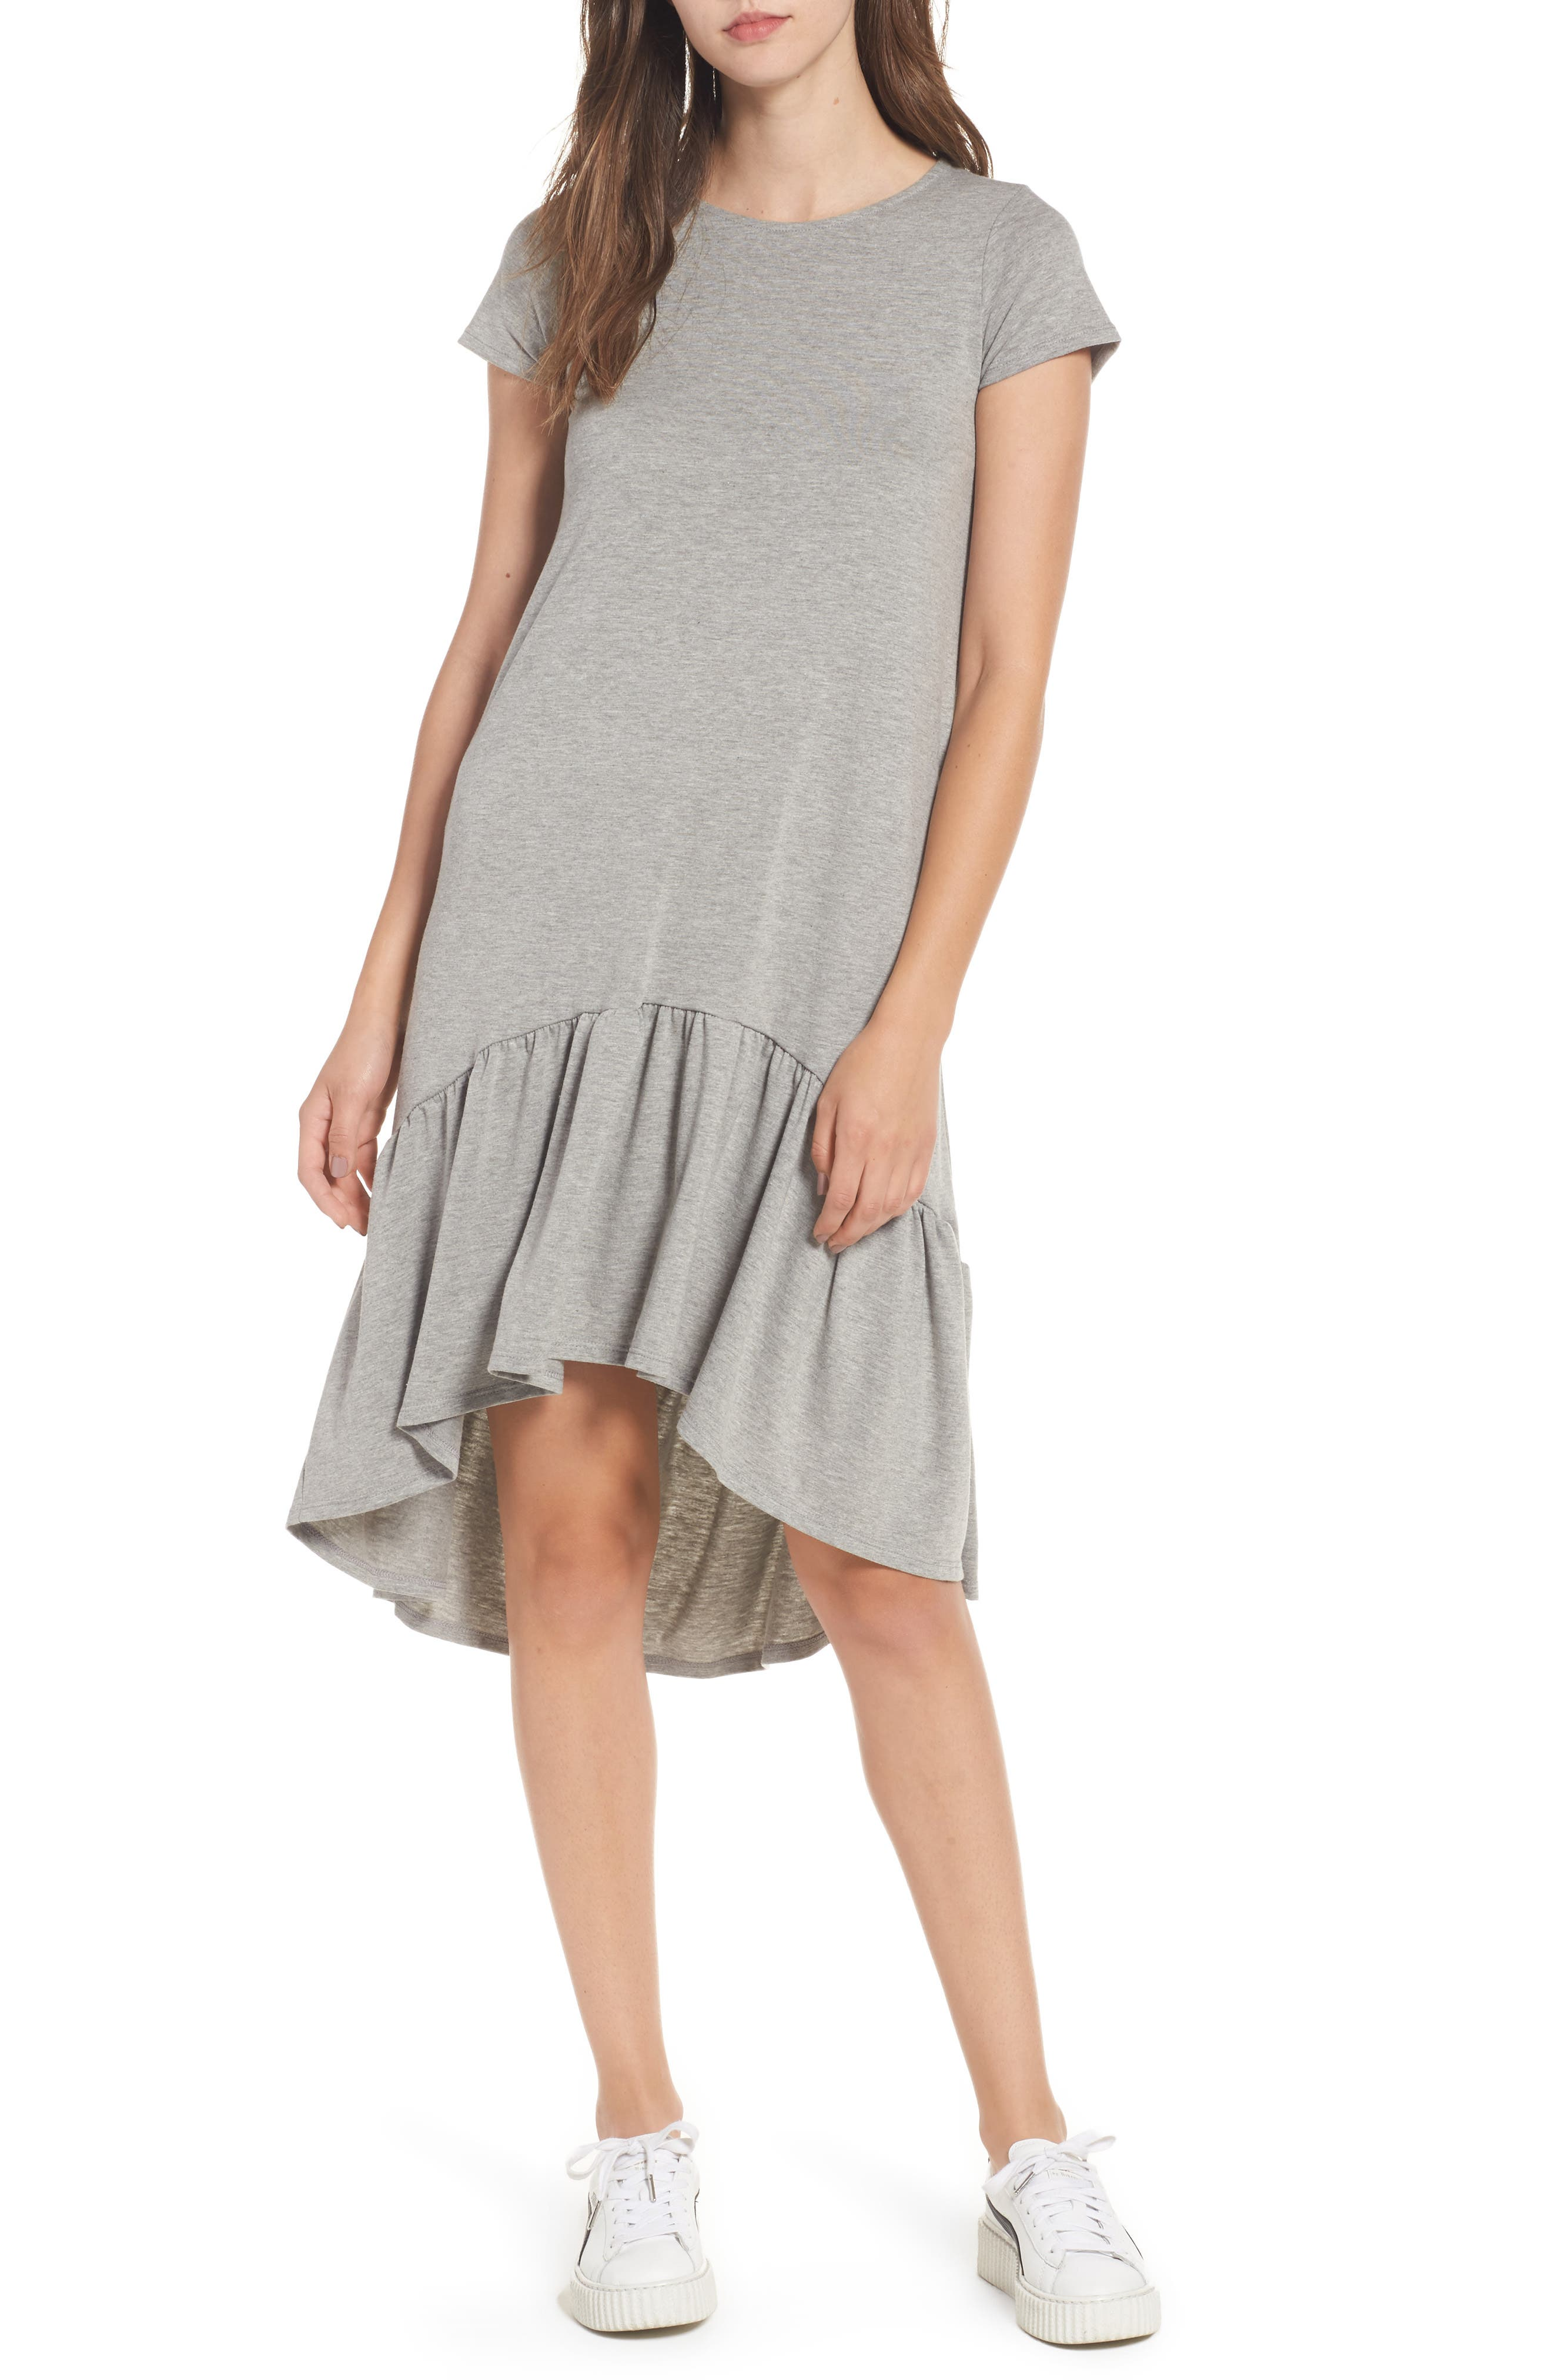 Jersey Knit Dresses: Find your perfect dress featuring tons of styles and fashions from cpdlp9wivh506.ga Your Online Women's Clothing Store! Get 5% in rewards with Club O!